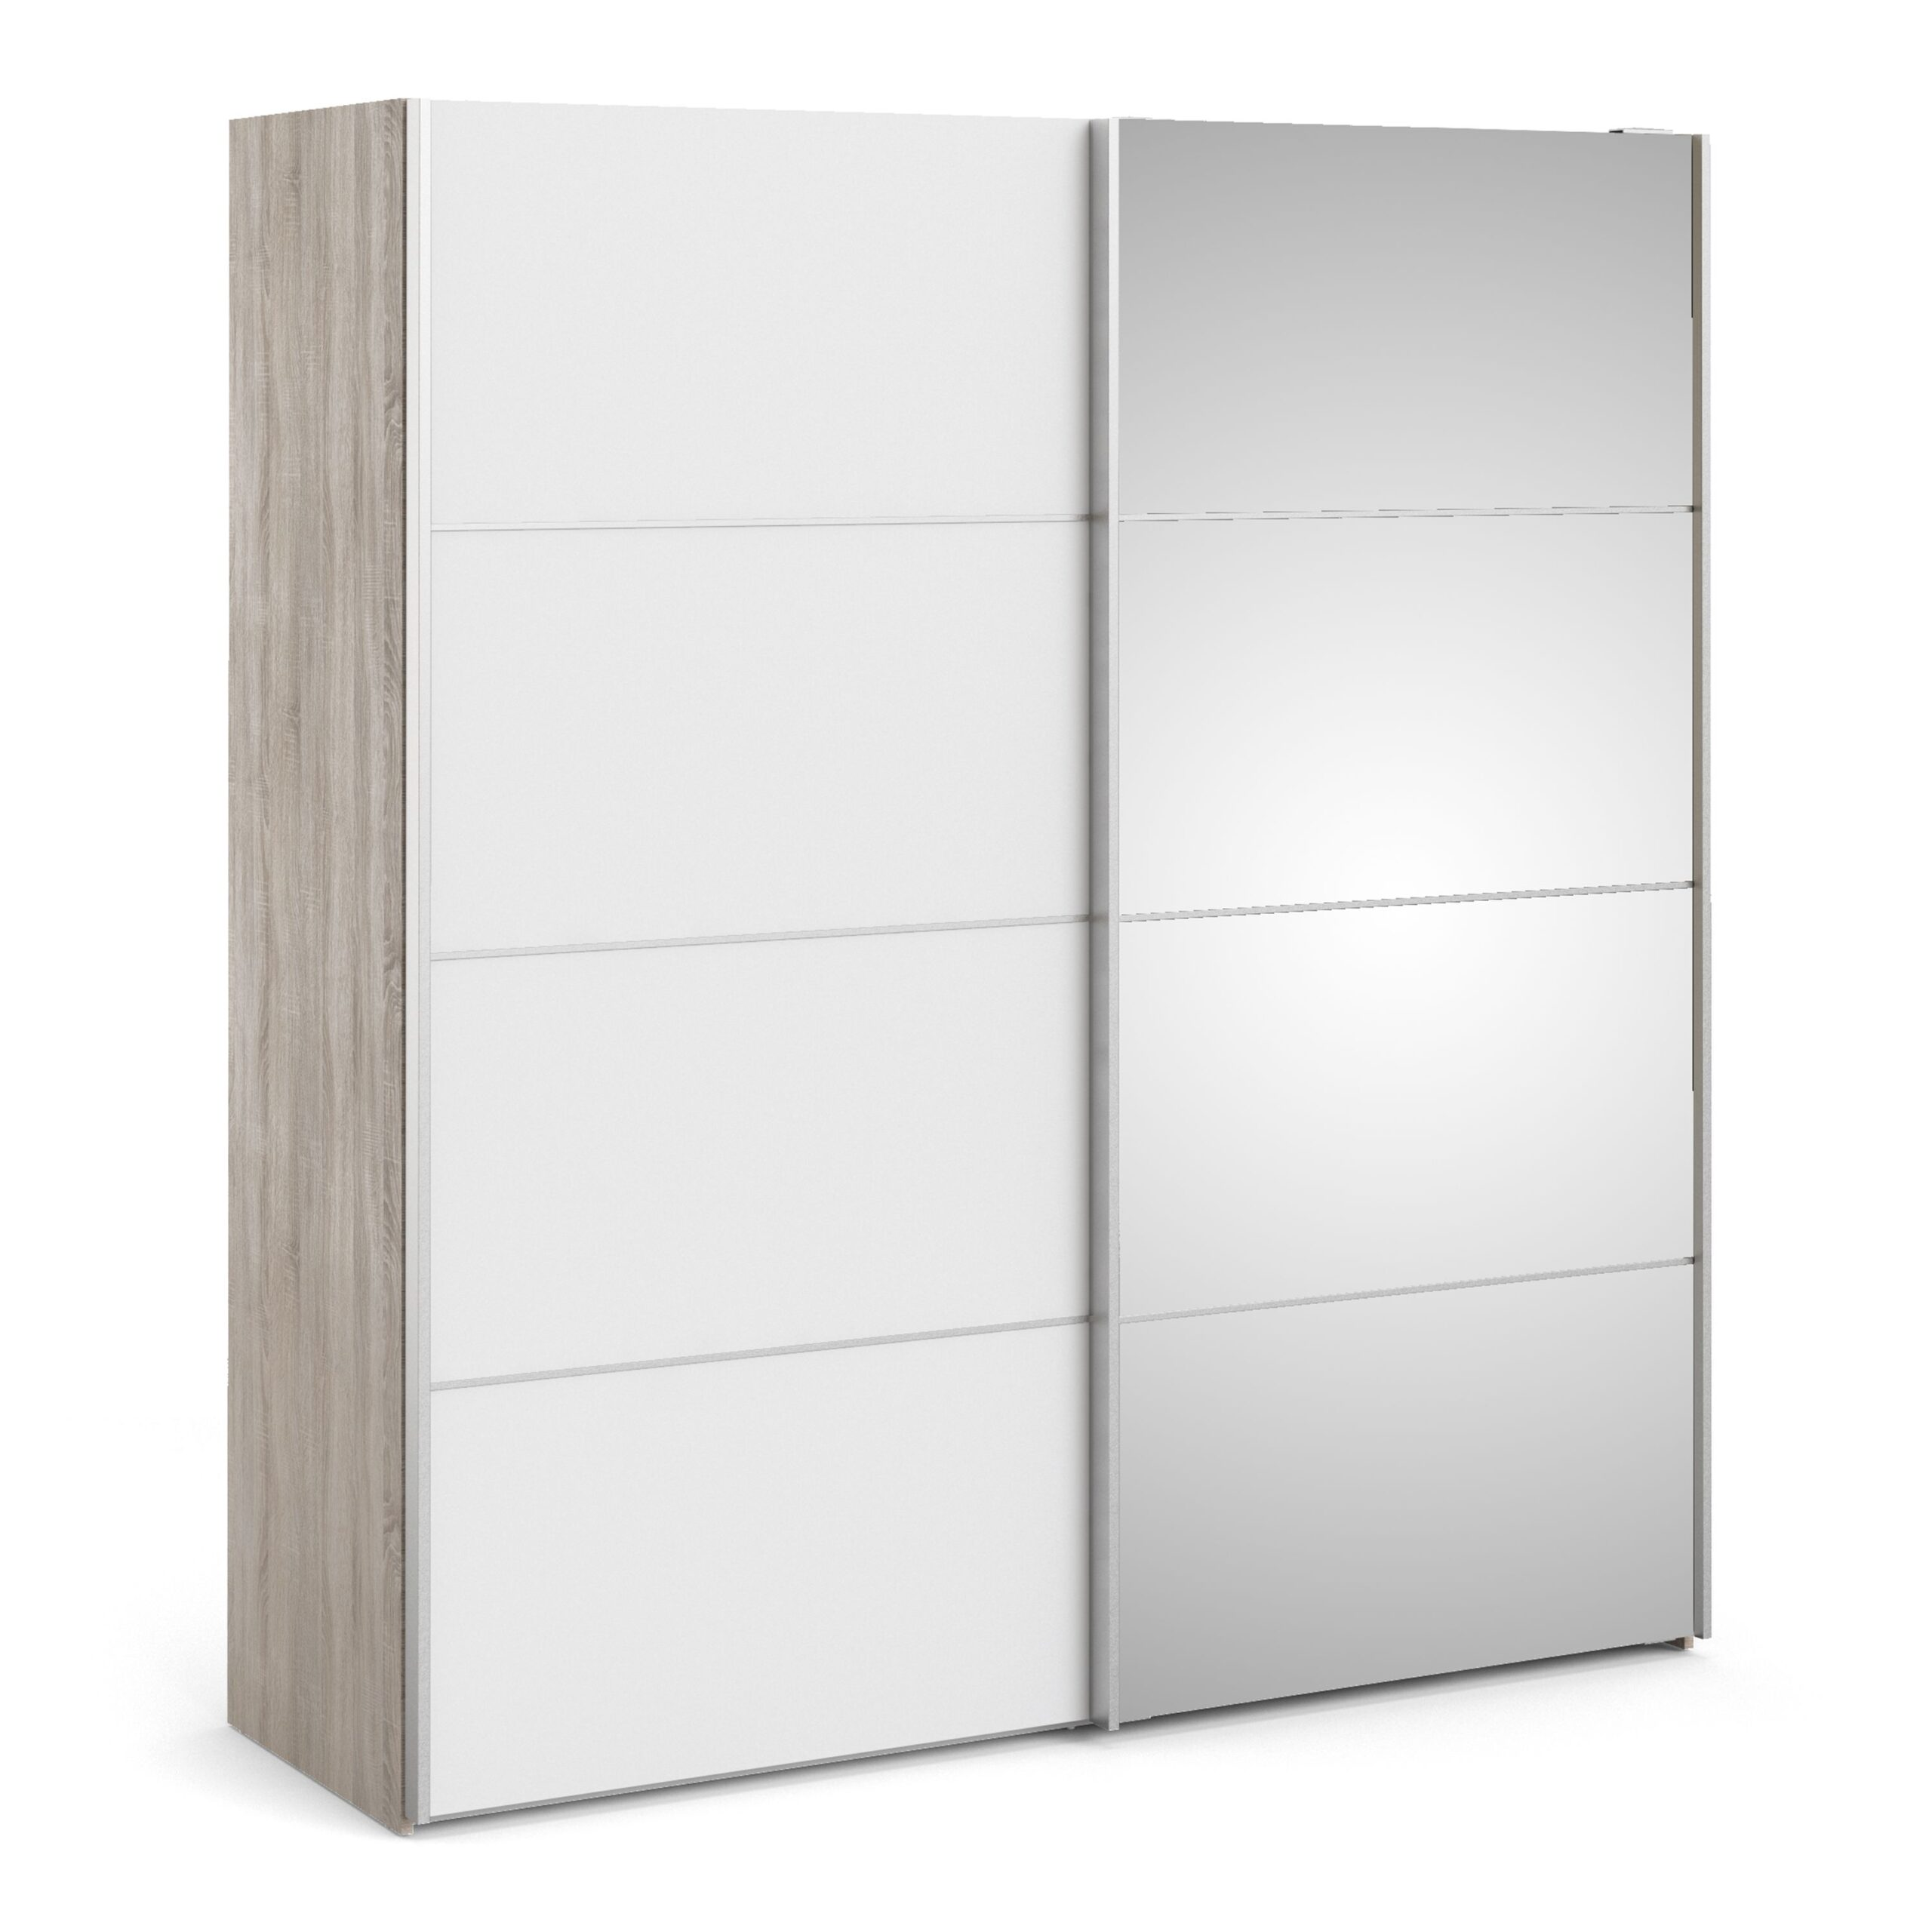 Phillipe Sliding Wardrobe 180cm In Truffle Oak With White And Mirror Doors With Five Shelves